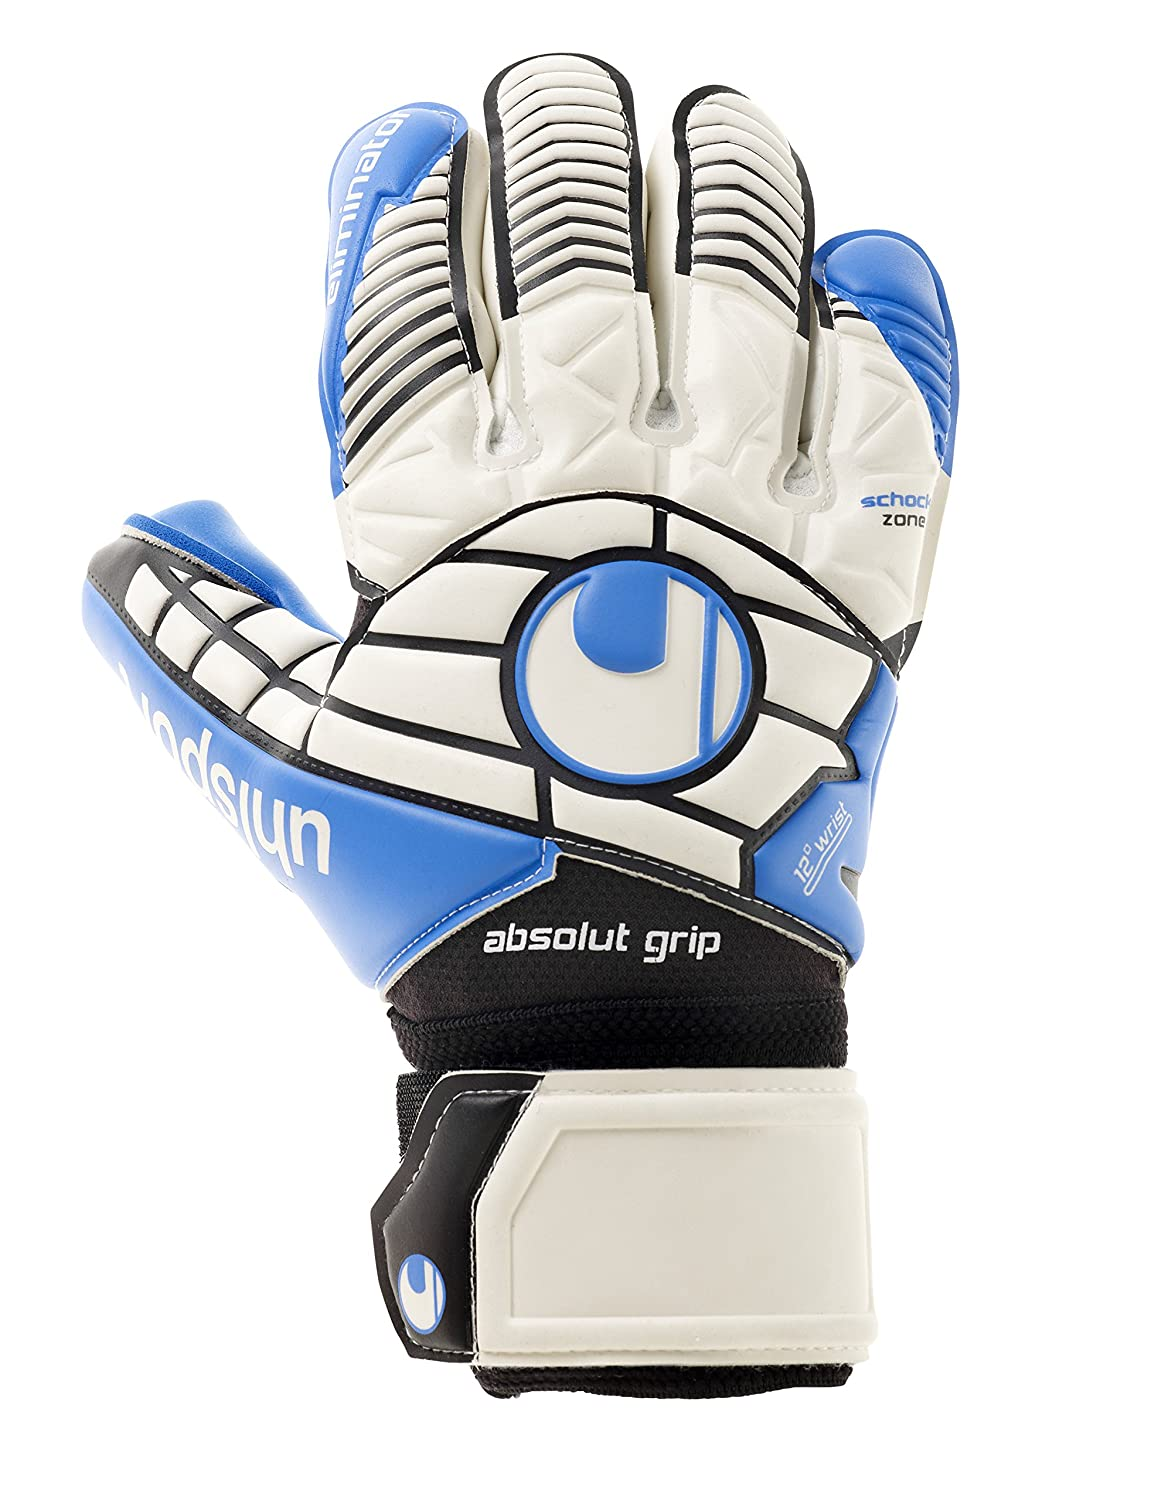 Uhlsport Handschuhe ELIMINATOR ABSOLUTGRIP HN